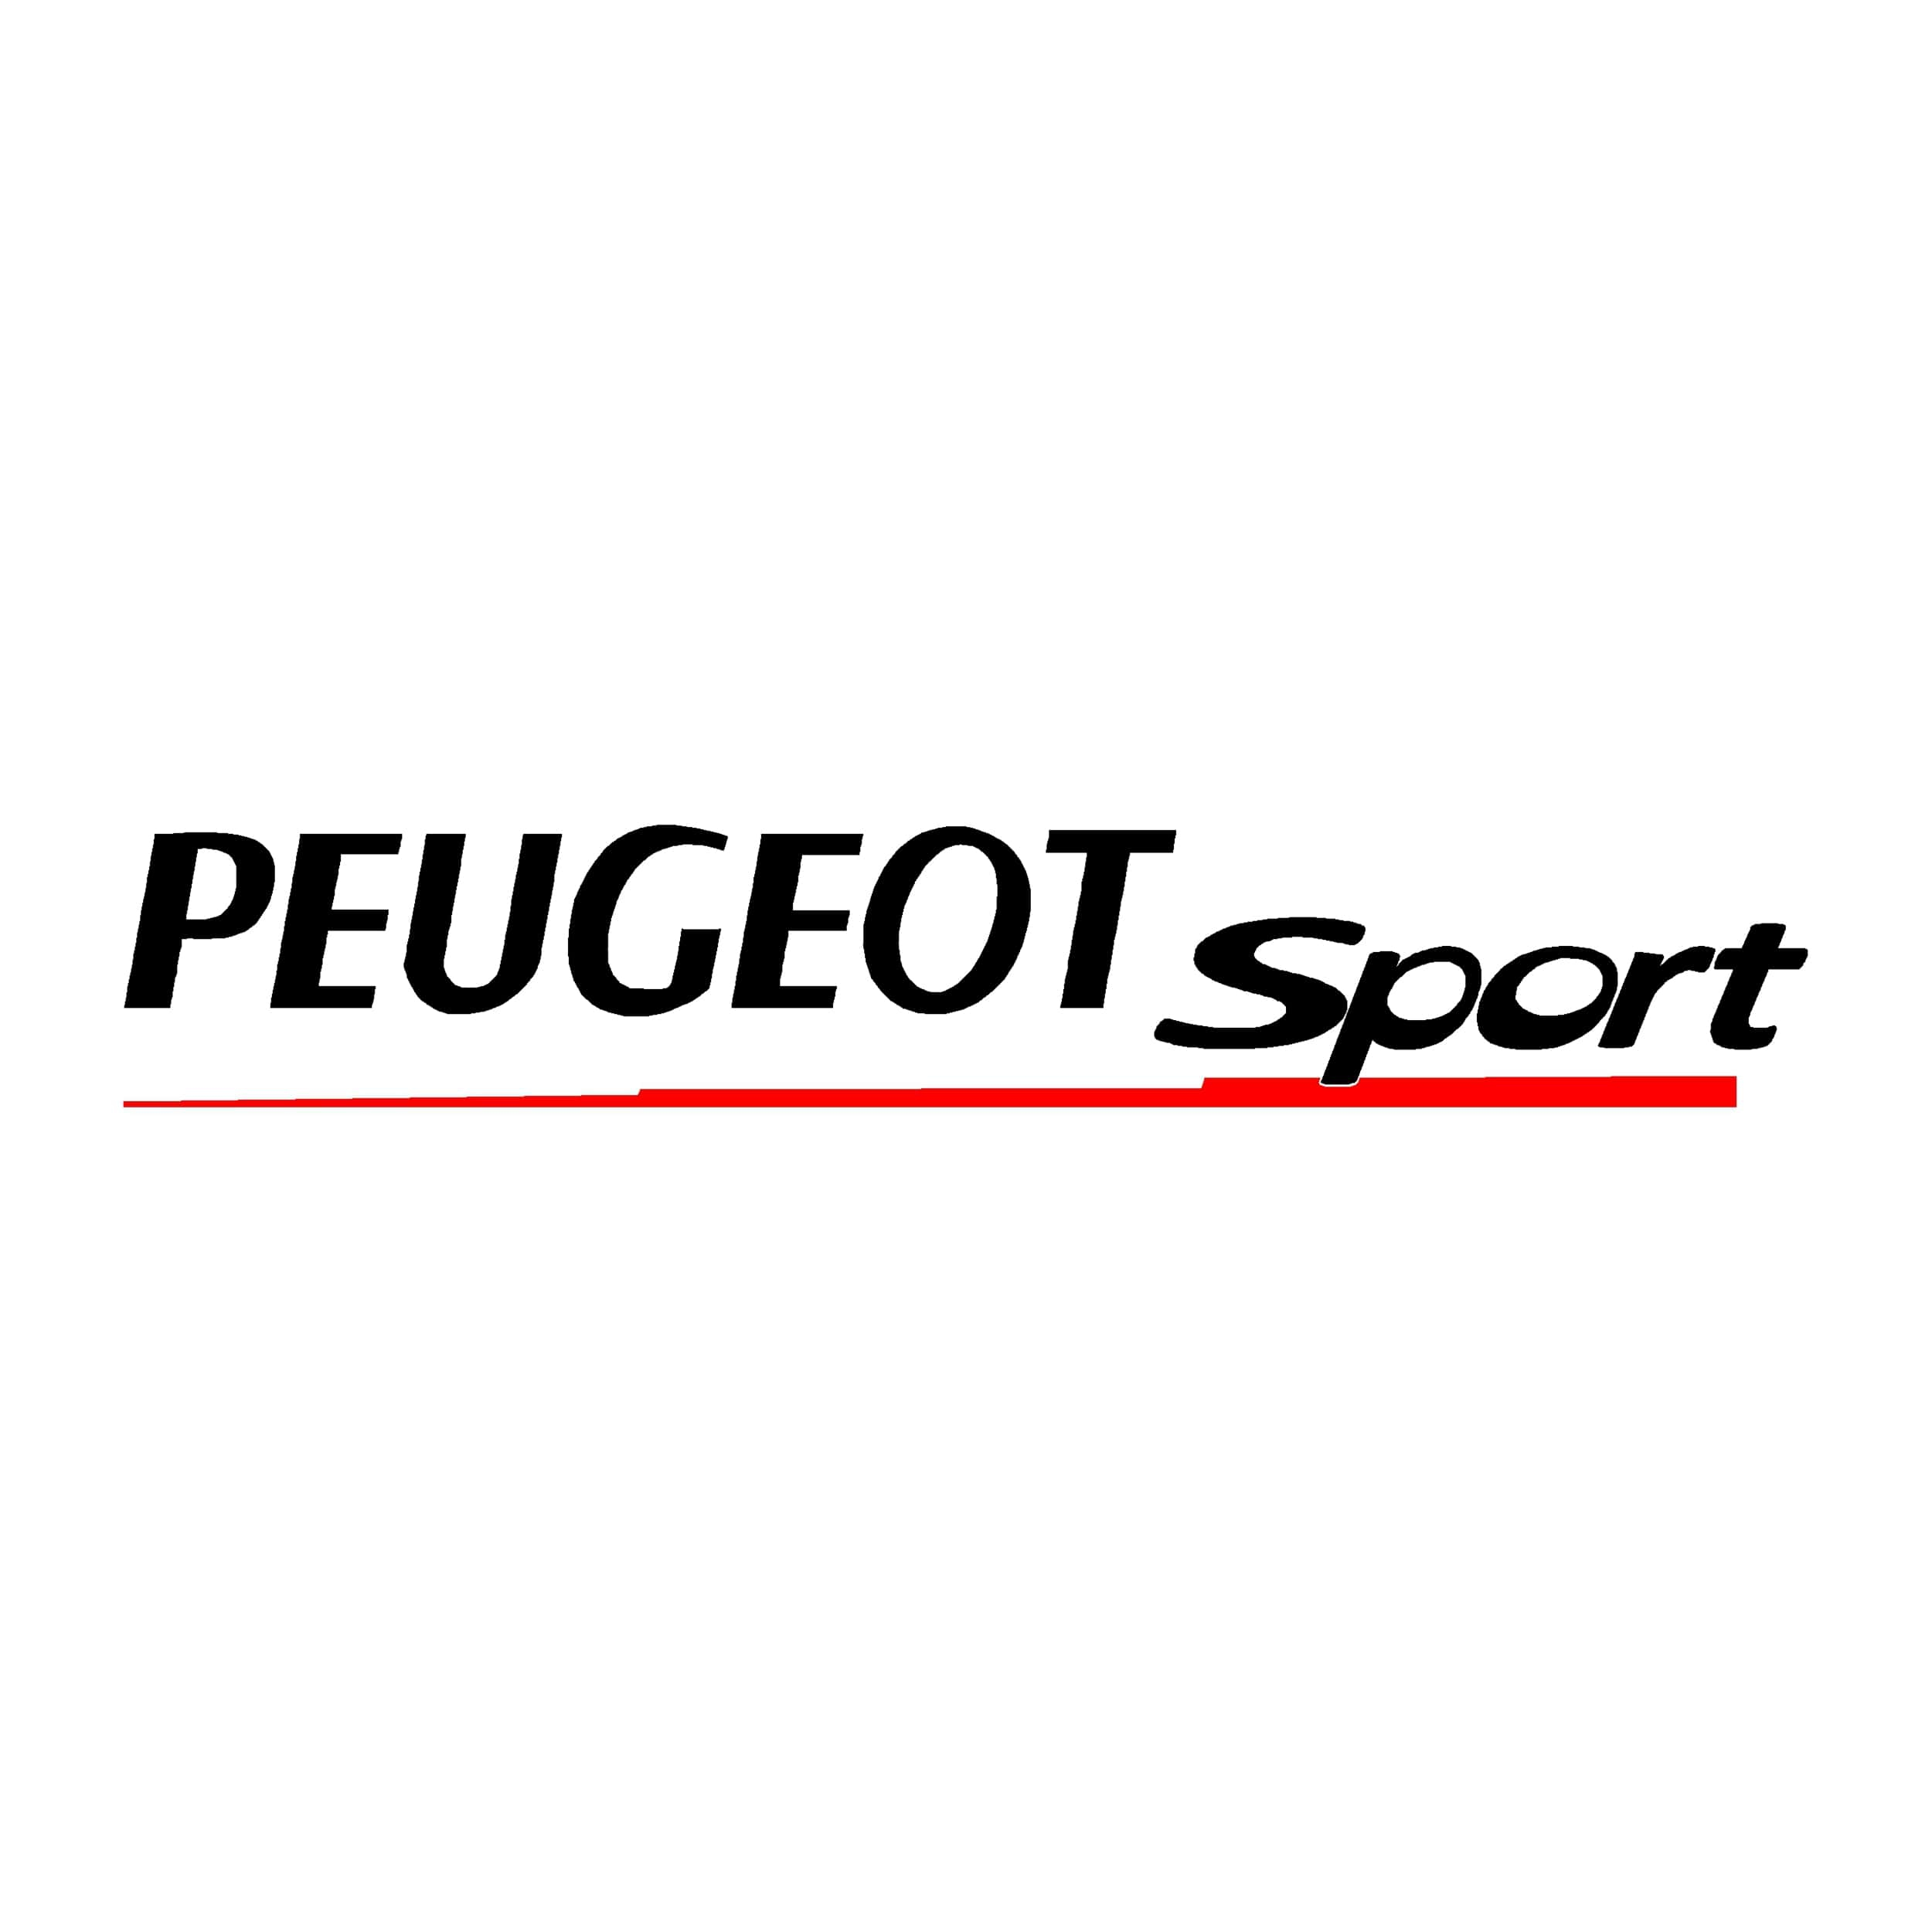 100 peugeot sport 308 gti by peugeot sport better than golf and focus rivals new peugeot. Black Bedroom Furniture Sets. Home Design Ideas